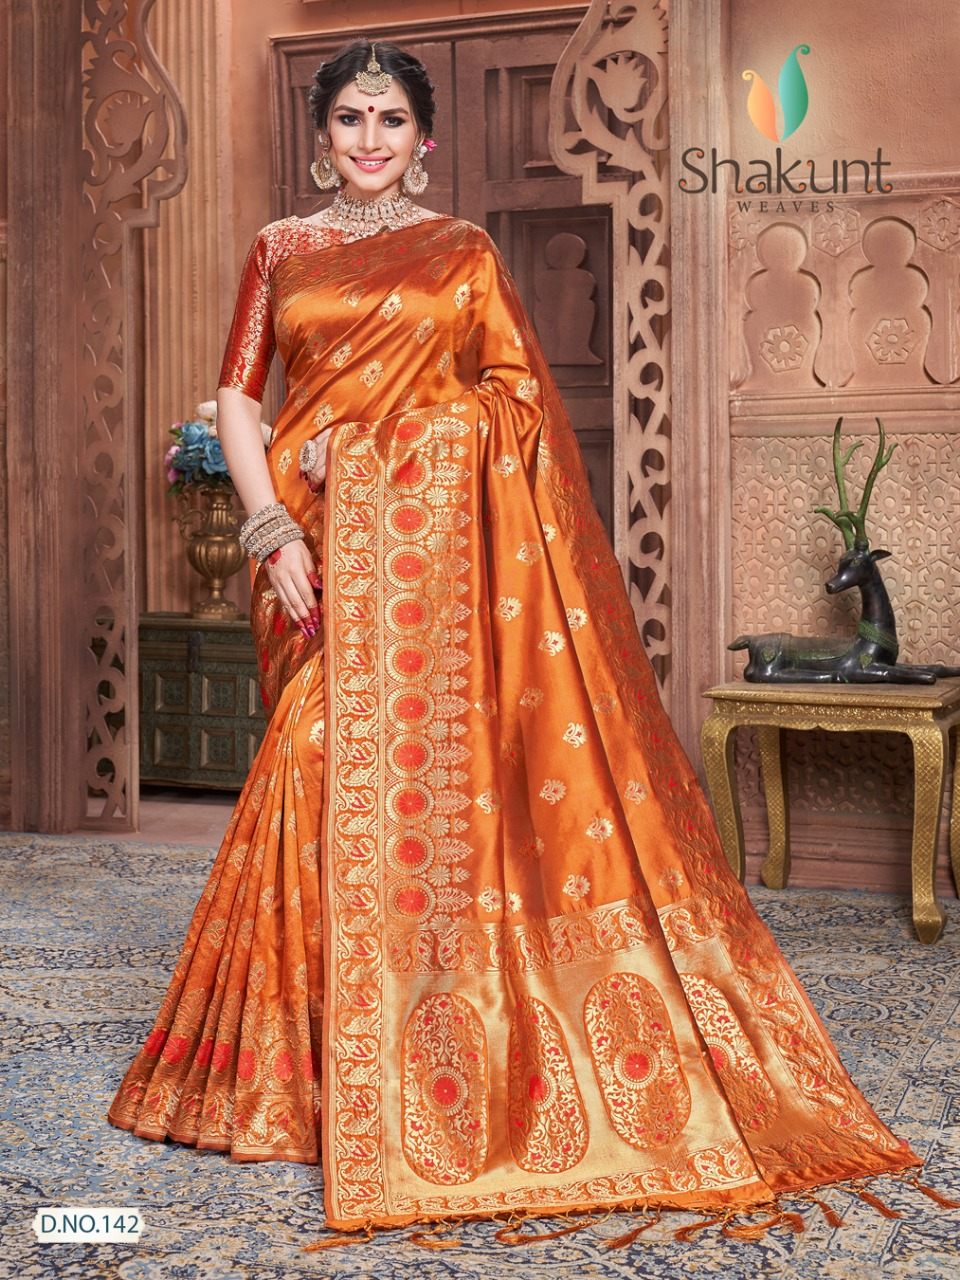 Shakunt weaves tapaswini indian wear silk sarees catalog